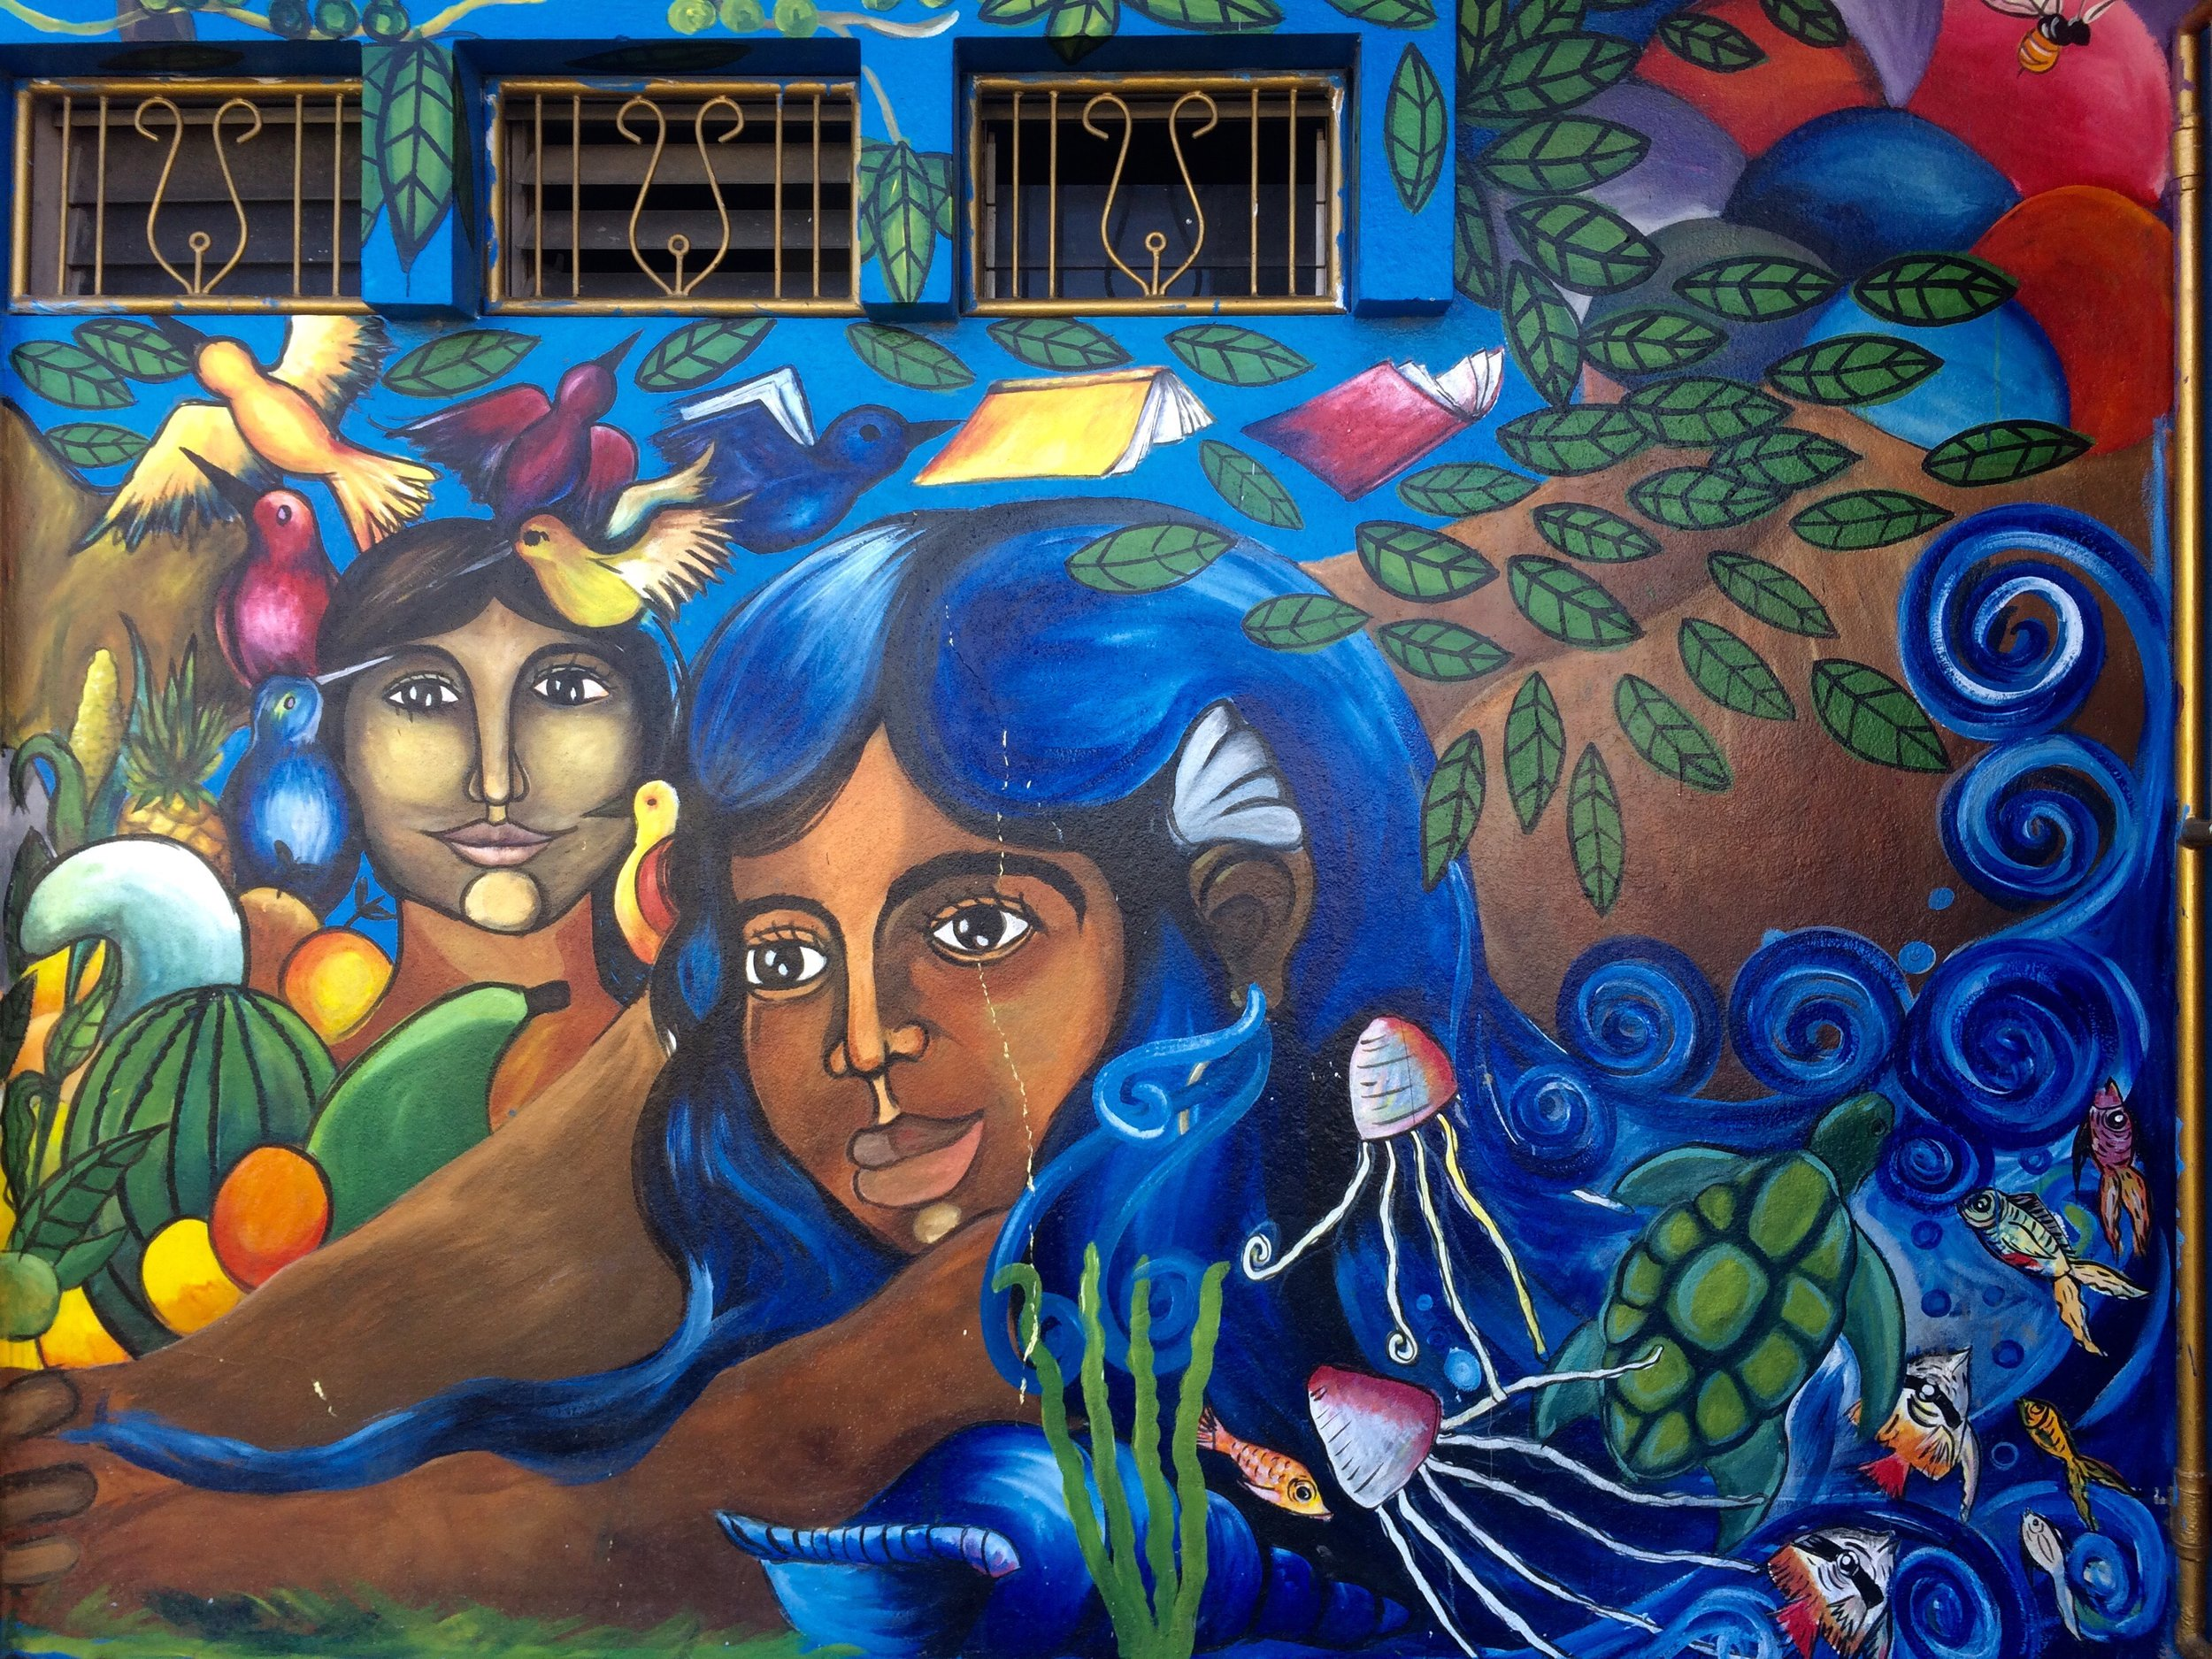 One of beautiful Esteli's many murals.